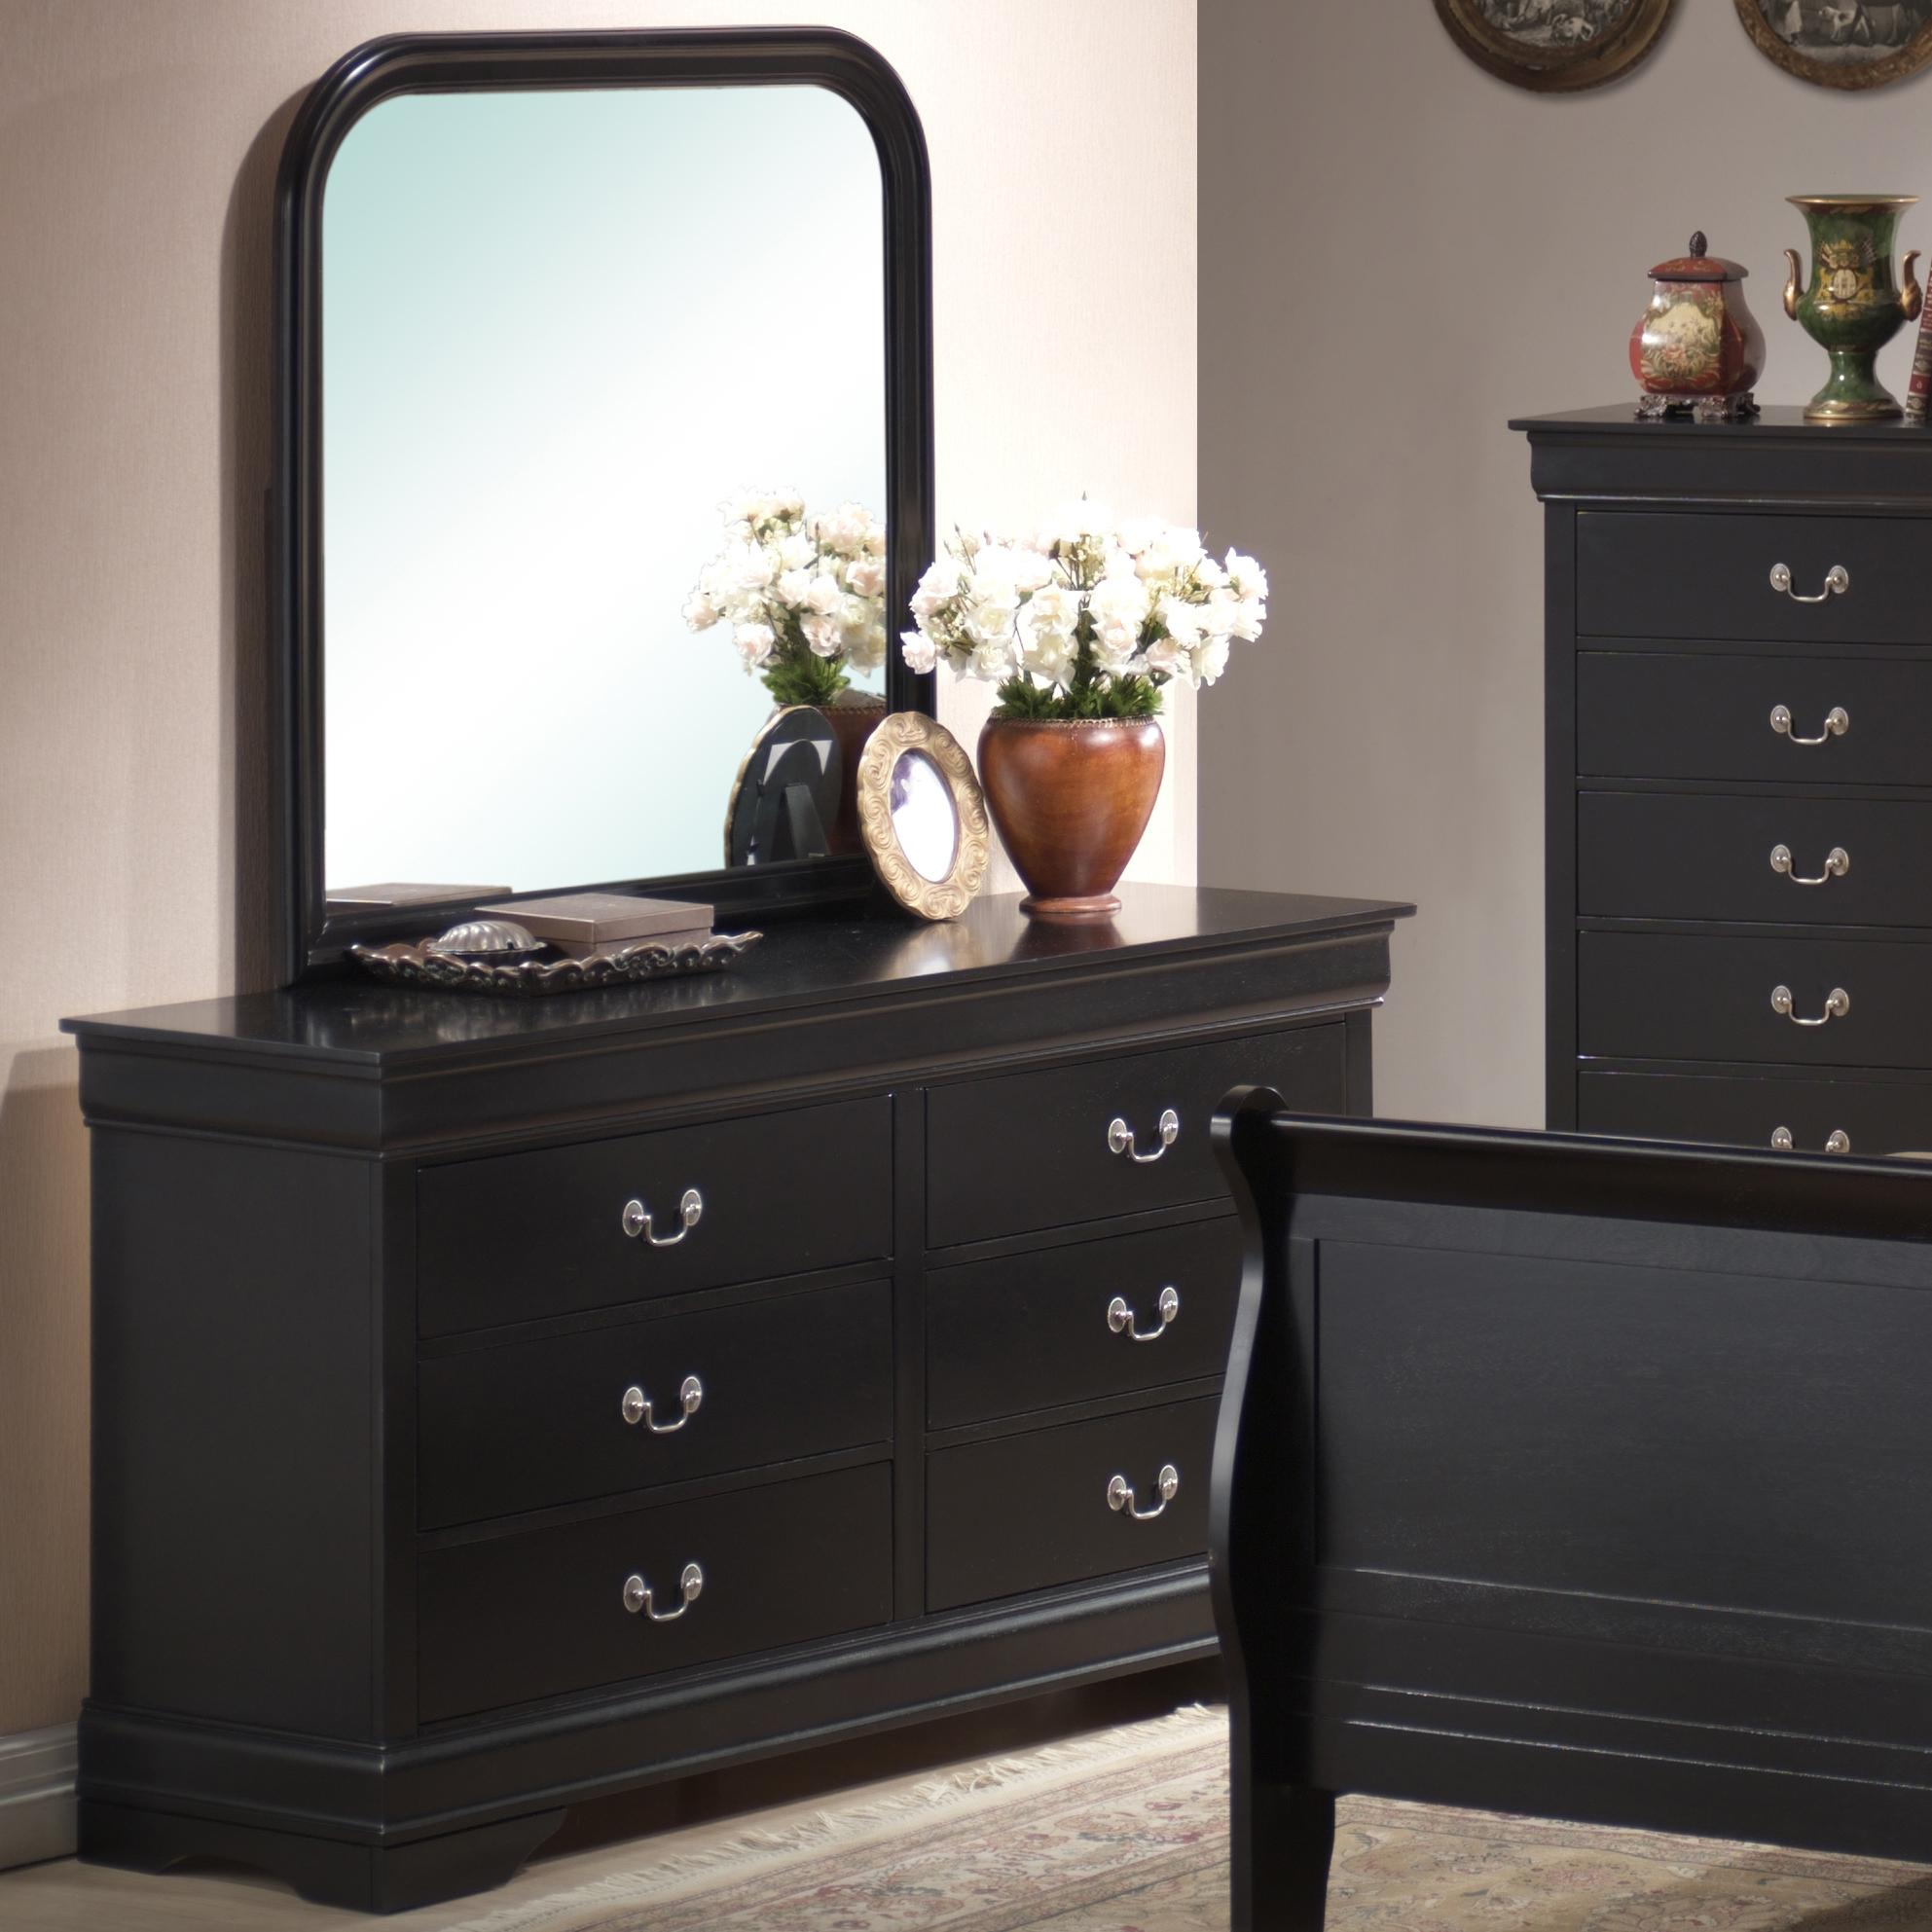 Lifestyle 5934 Dresser & Mirror Combo - Item Number: C5934A-040-6DBL+050-XXBL